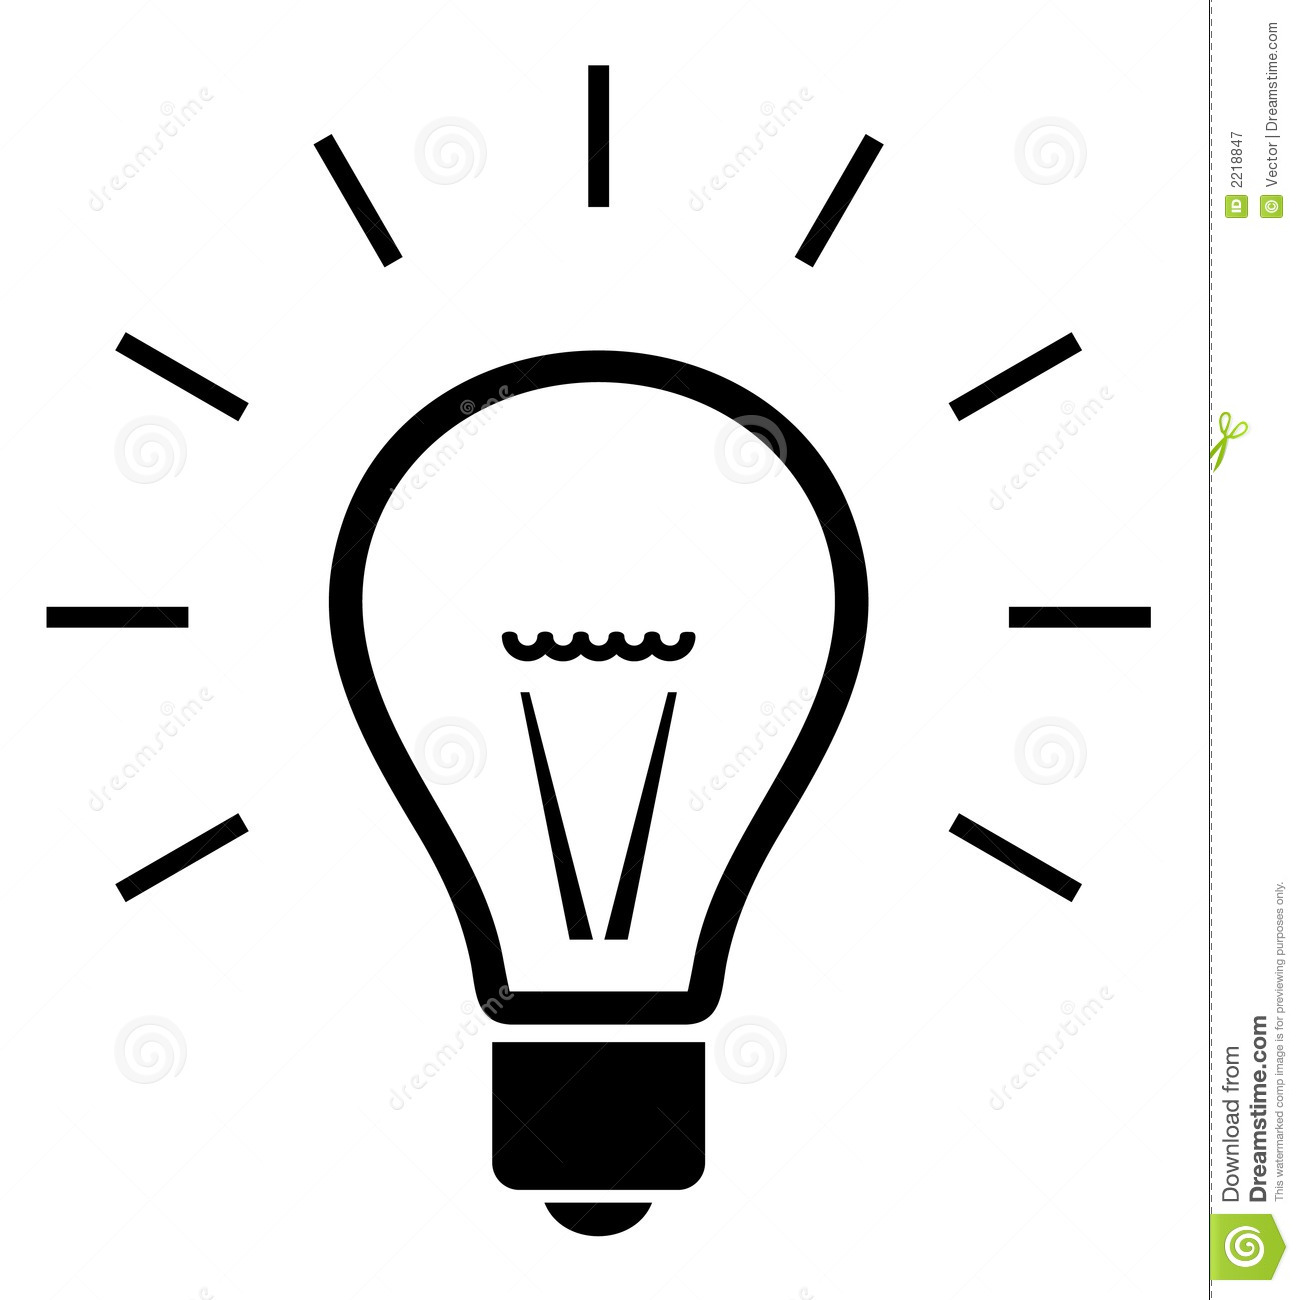 White lightbulb clipart graphic free library Light Bulb Clipart Black And White | Free download best Light Bulb ... graphic free library